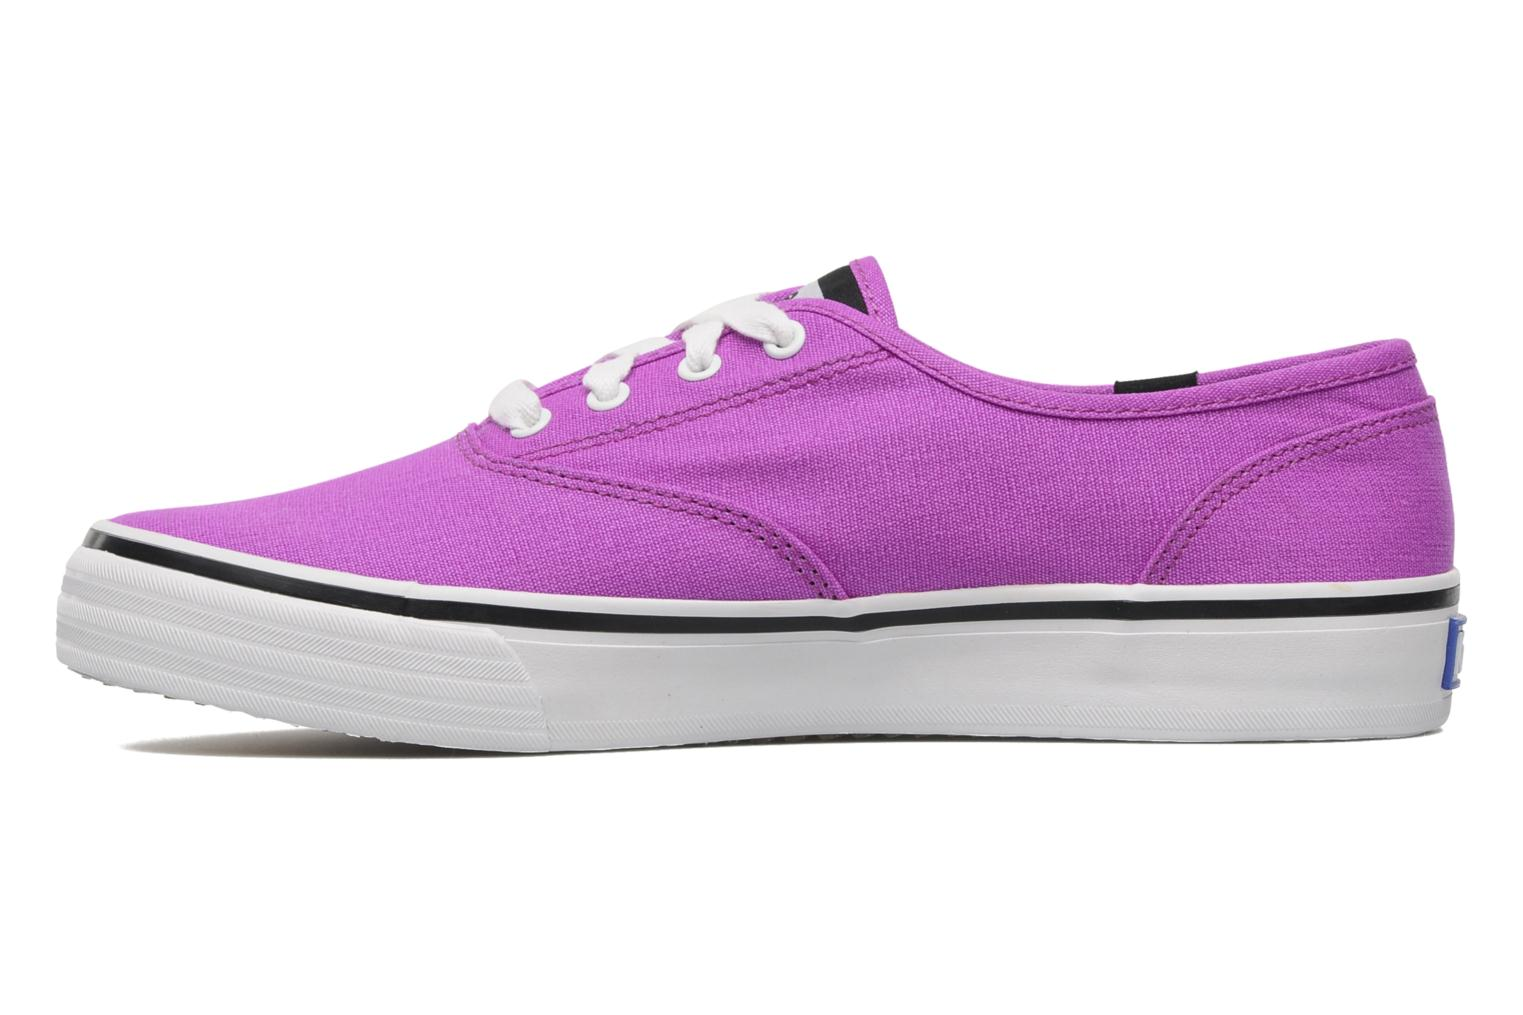 Double Dutch Neon Purple canvas